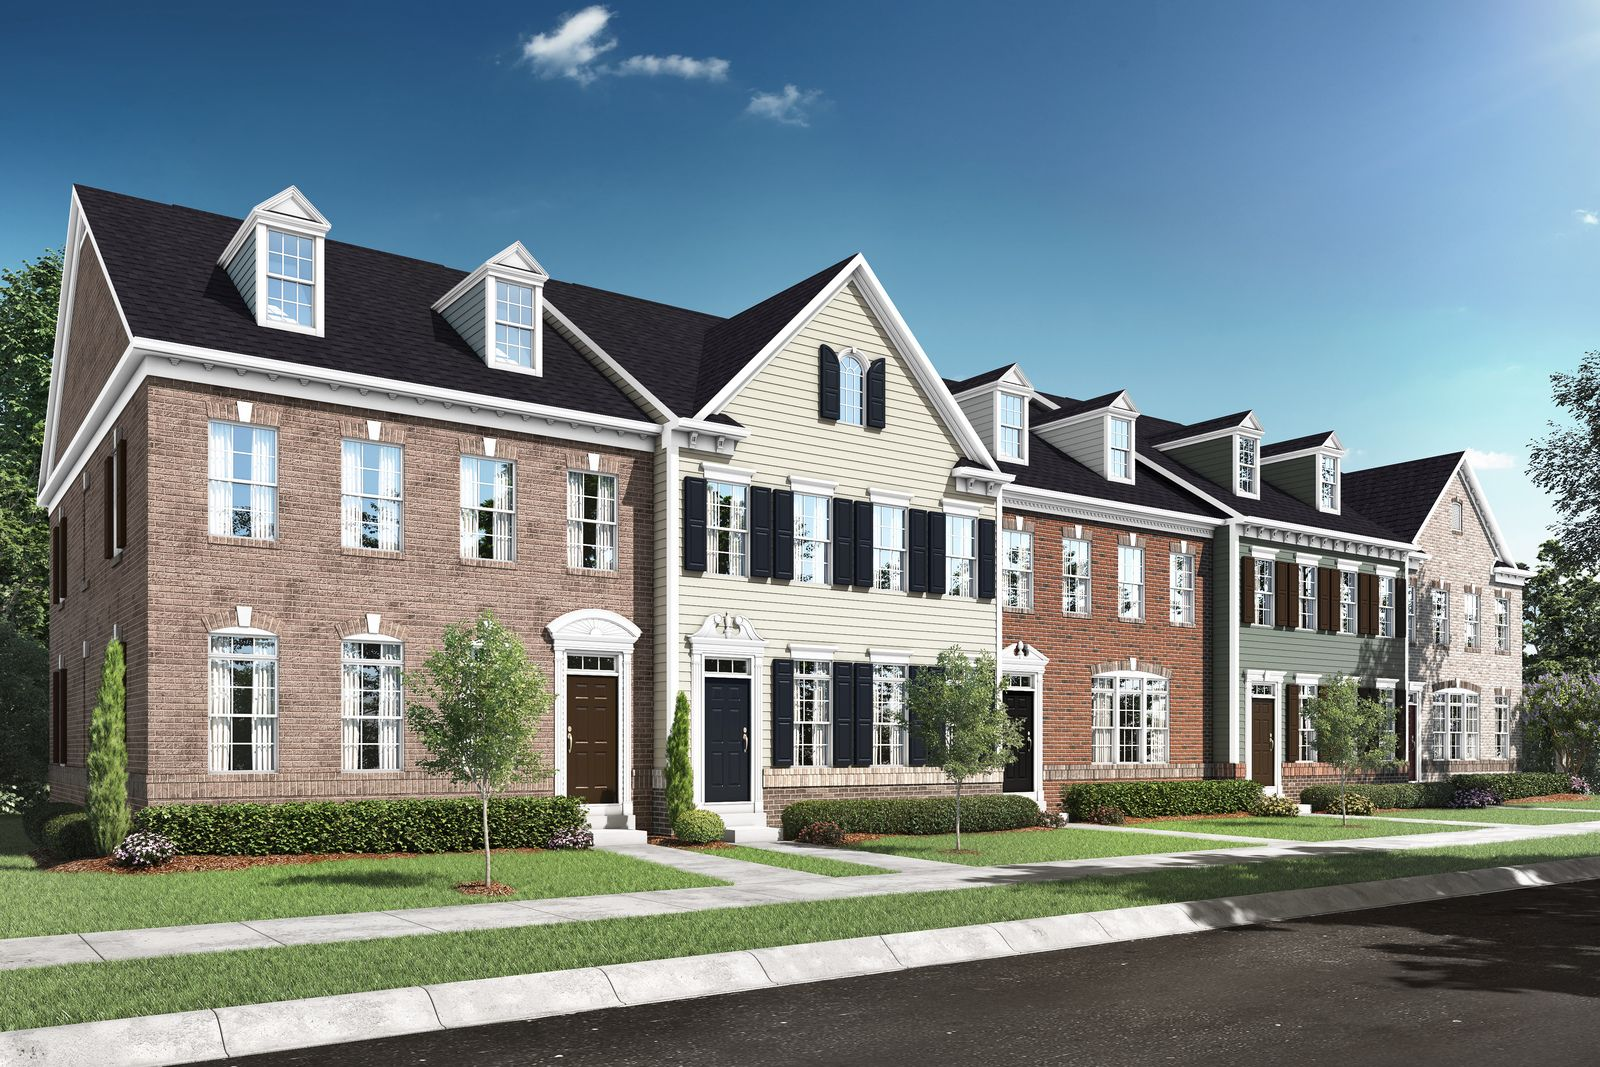 Discover Baltimore's Grandest Townhomes:Luxury homes located only steps to onsite shops, dining, amenities, and more! Our newest section is now released.Schedule a visit today!